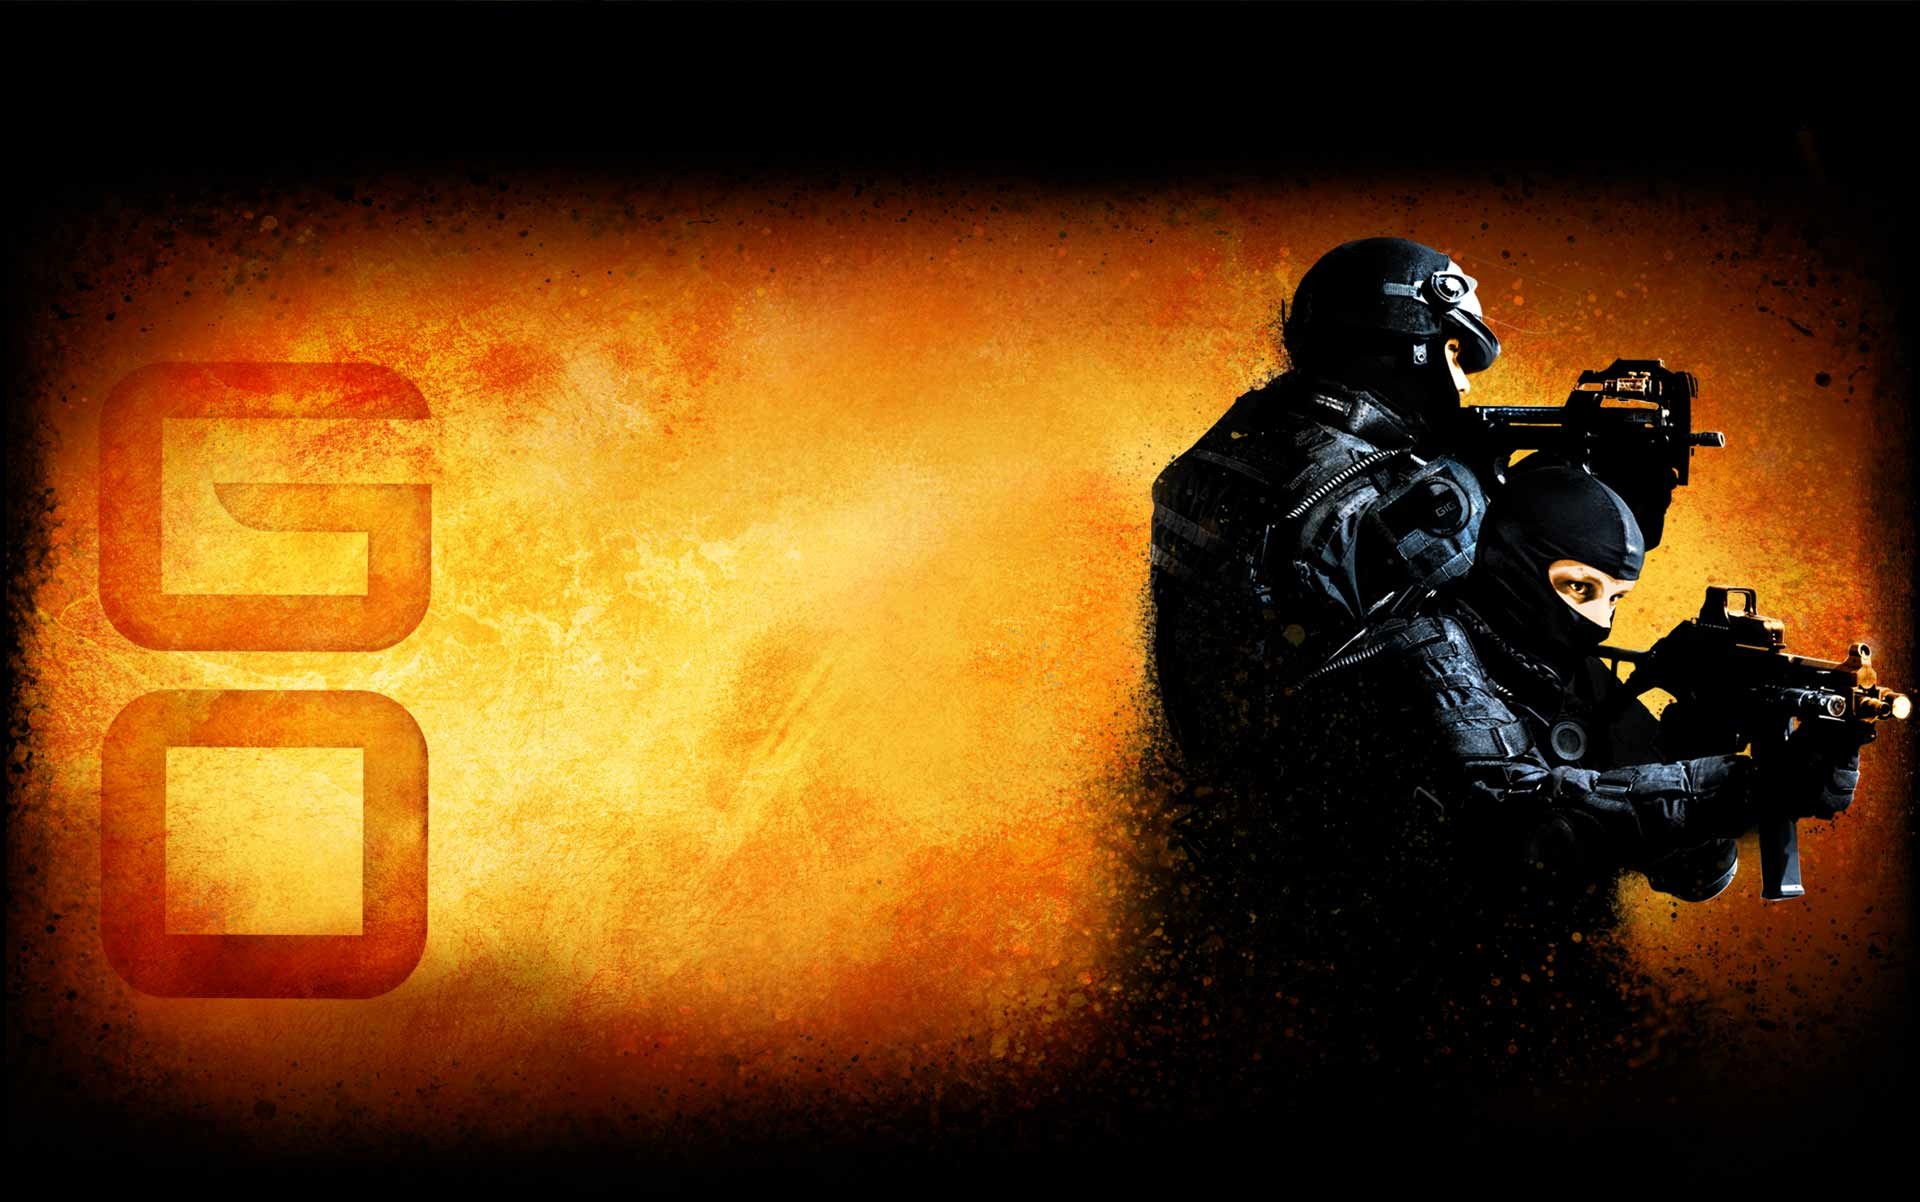 Spyro Iphone Wallpaper Counter Strike Global Offensive Wallpapers Pictures Images